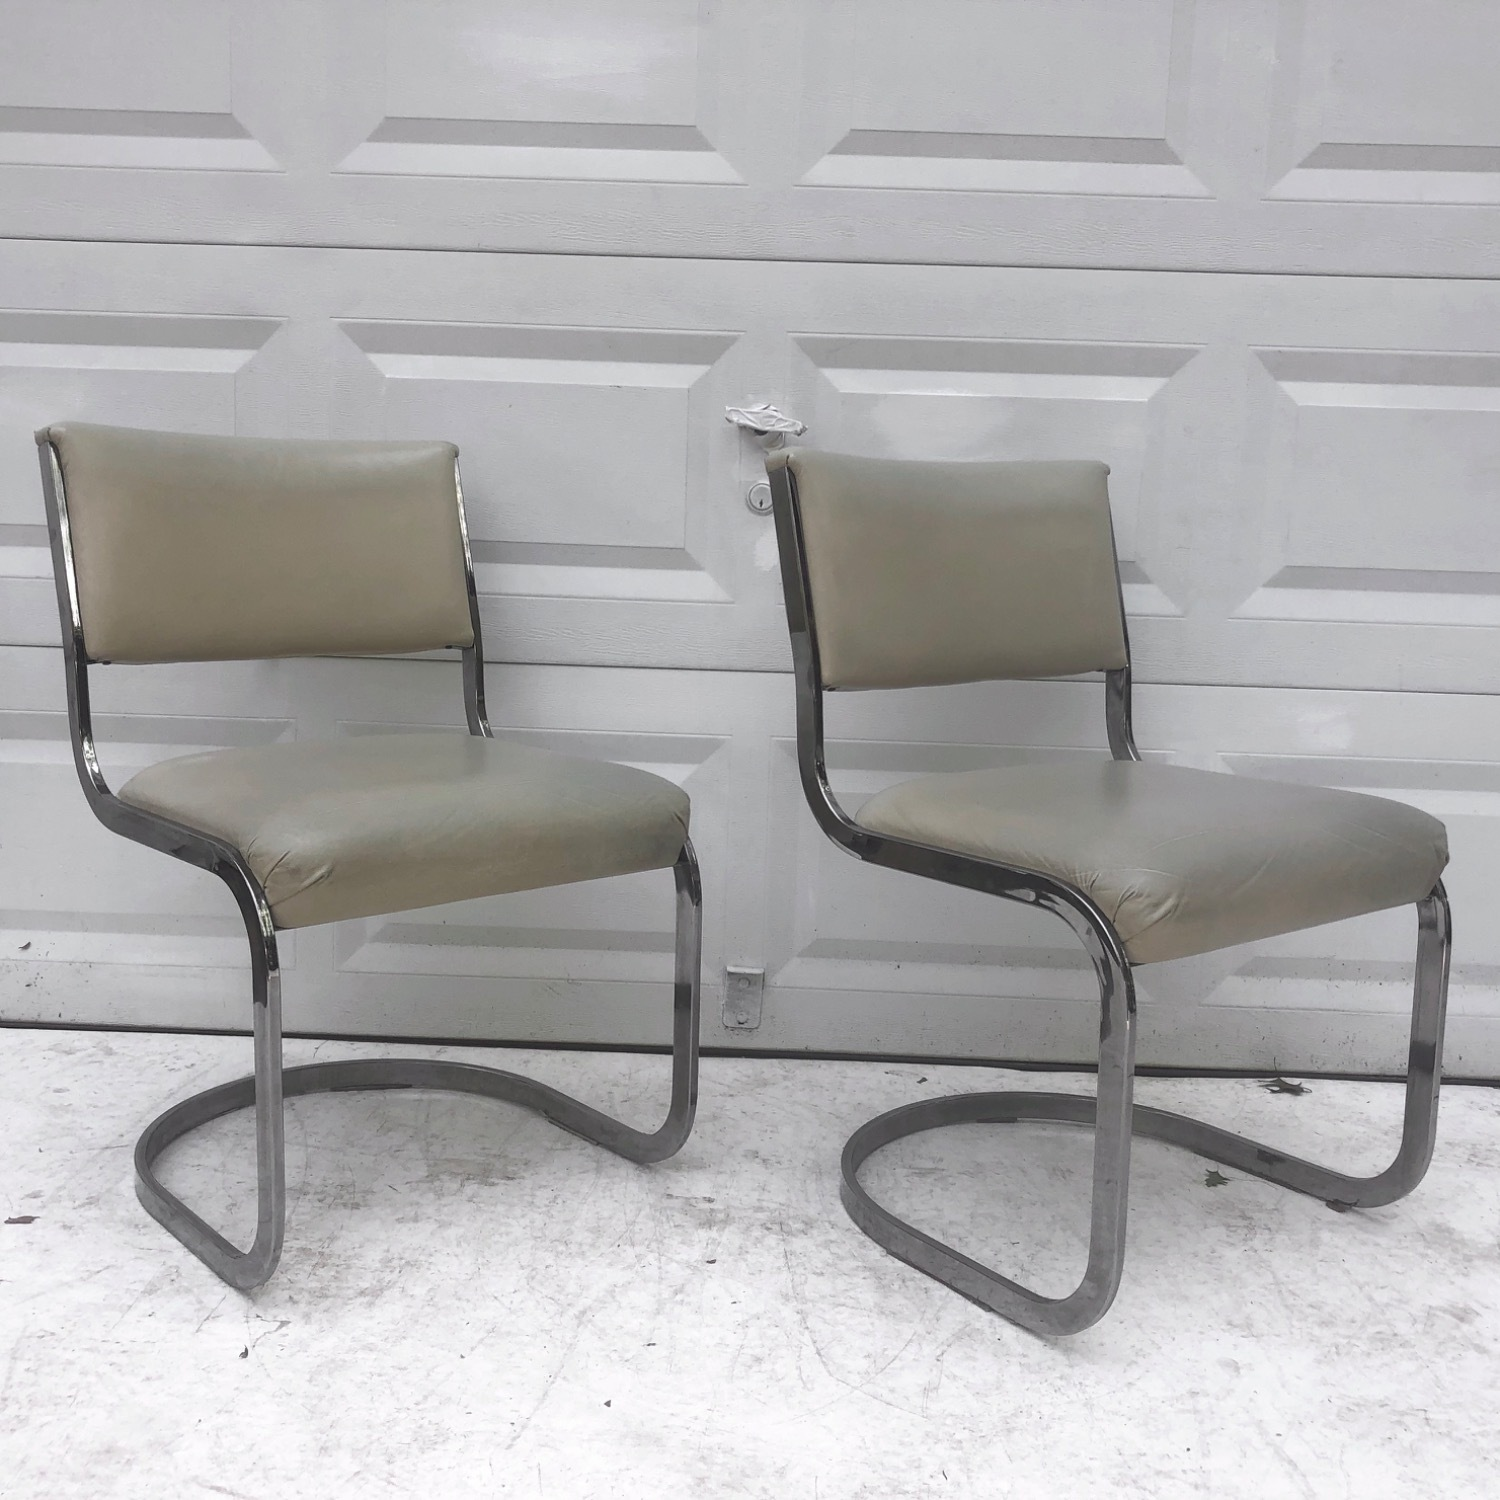 Vintage Modern Dining Chairs Set of 8 - image-6